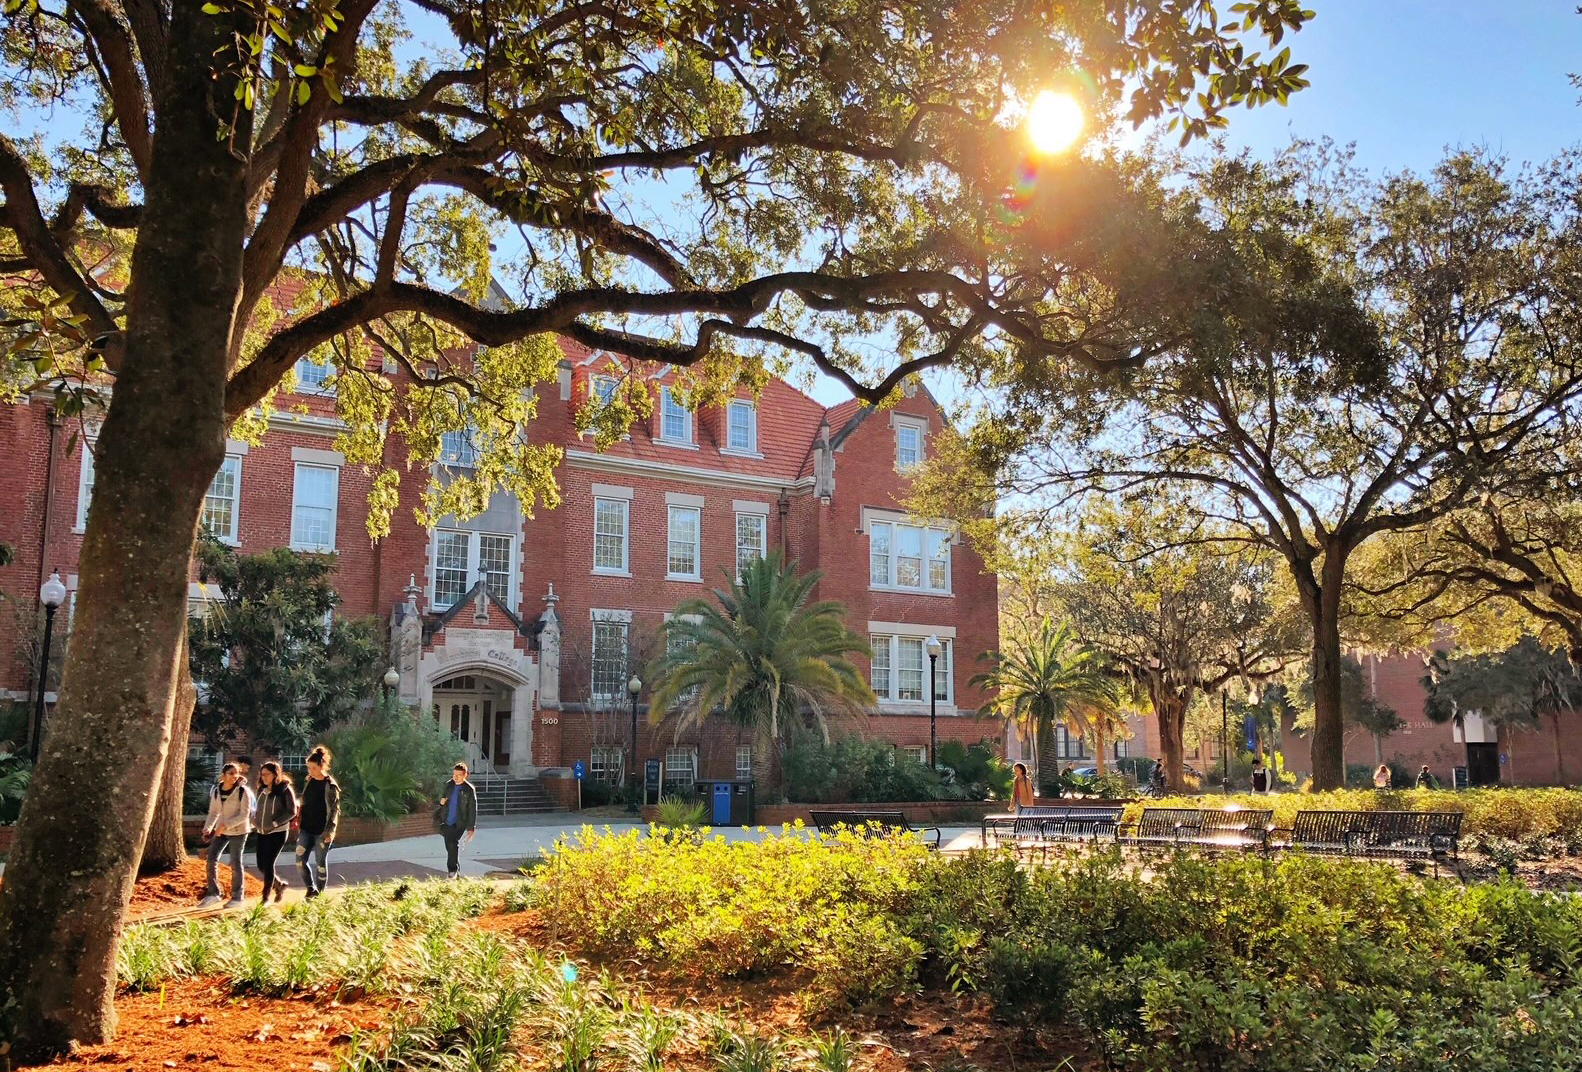 University of Florida campus